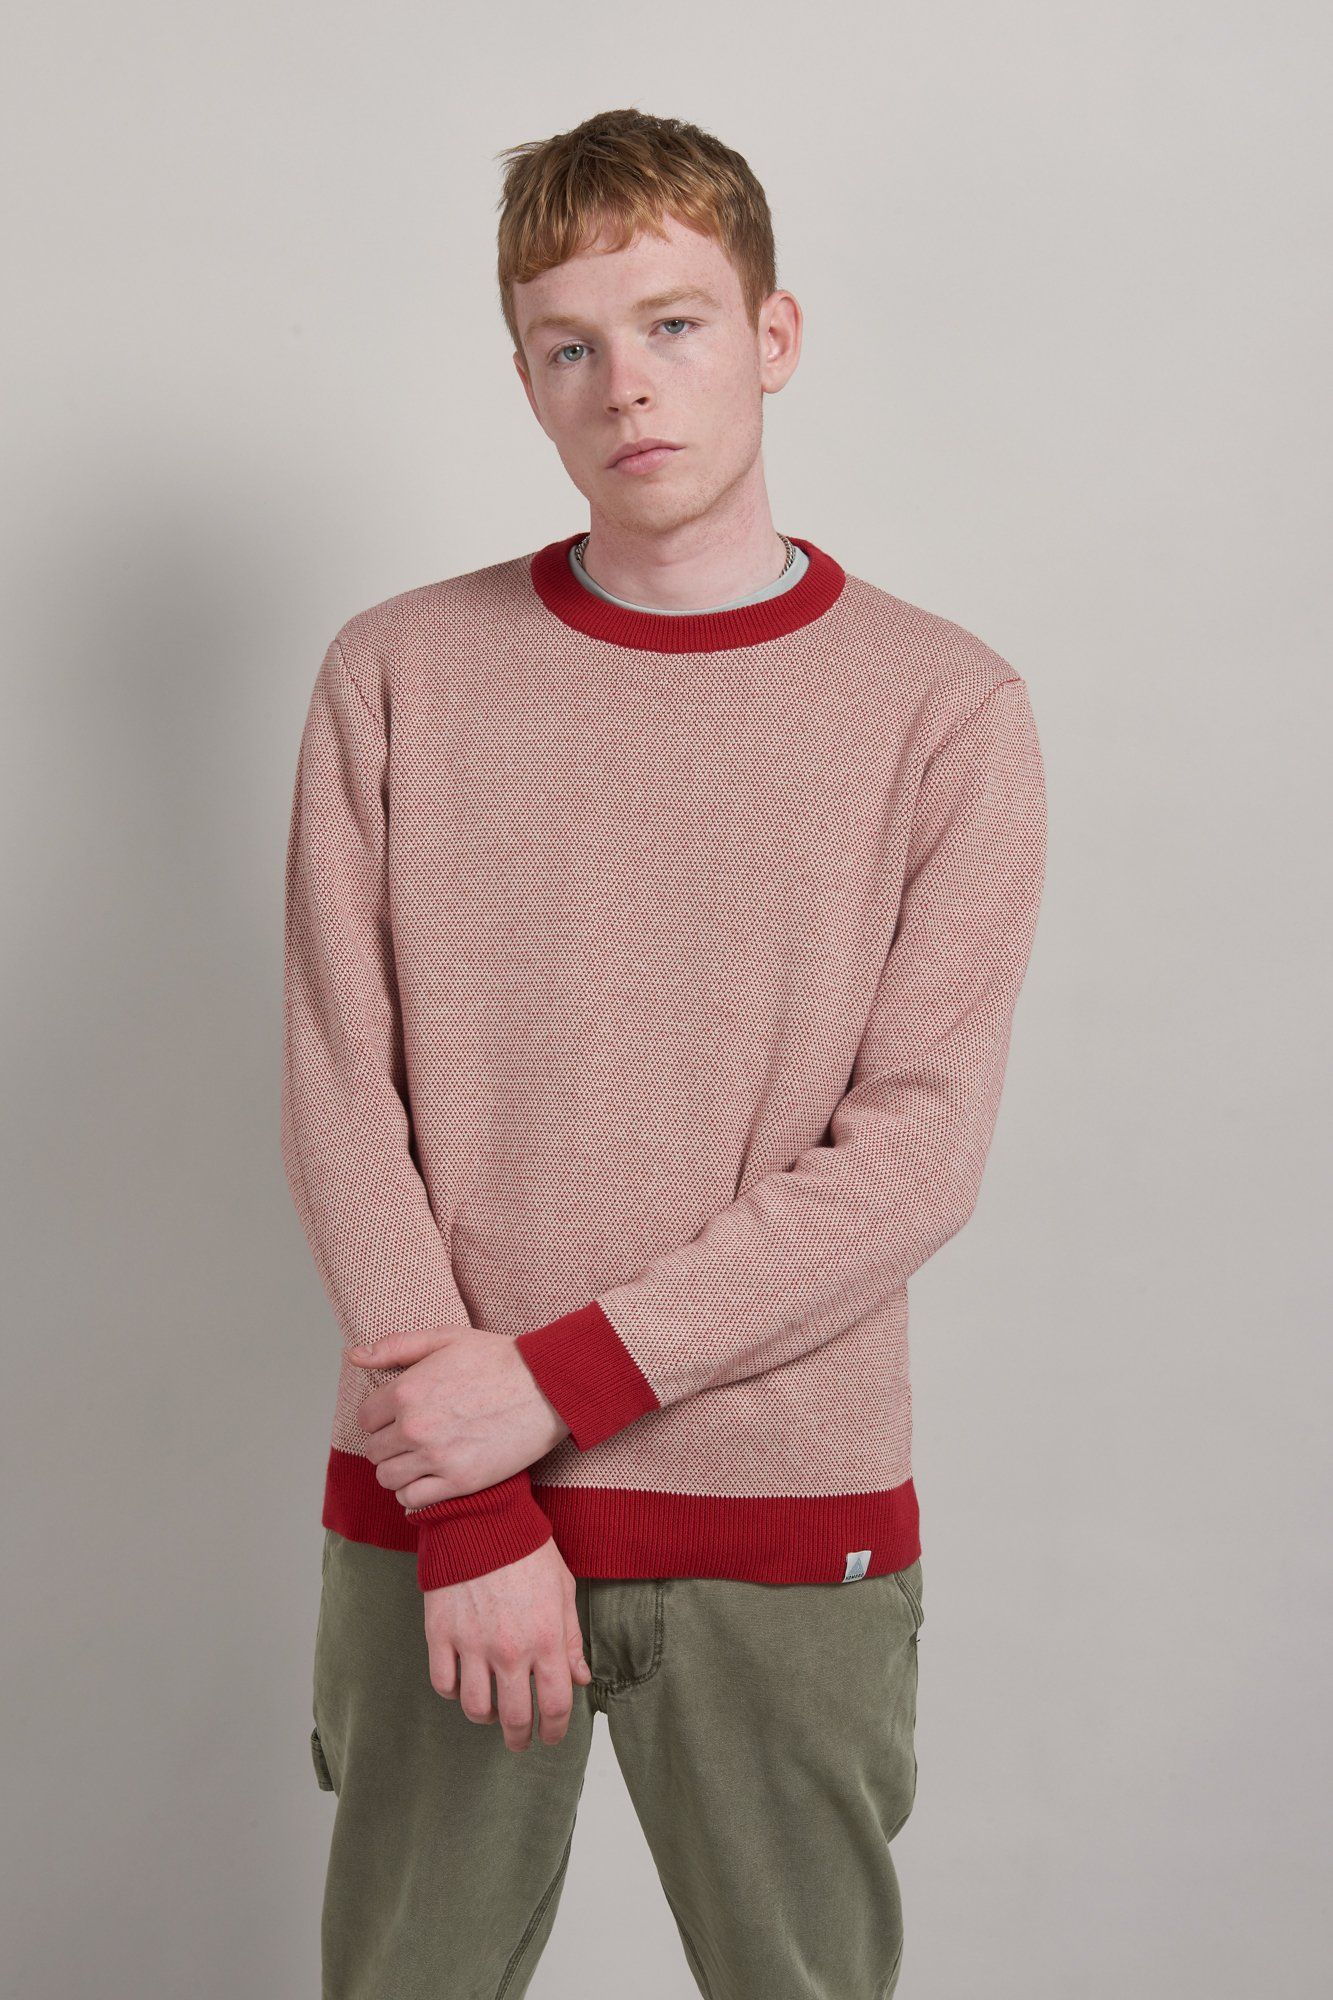 Jumper - CARL Organic Cotton Jumper Burnt Red & Oatmeal